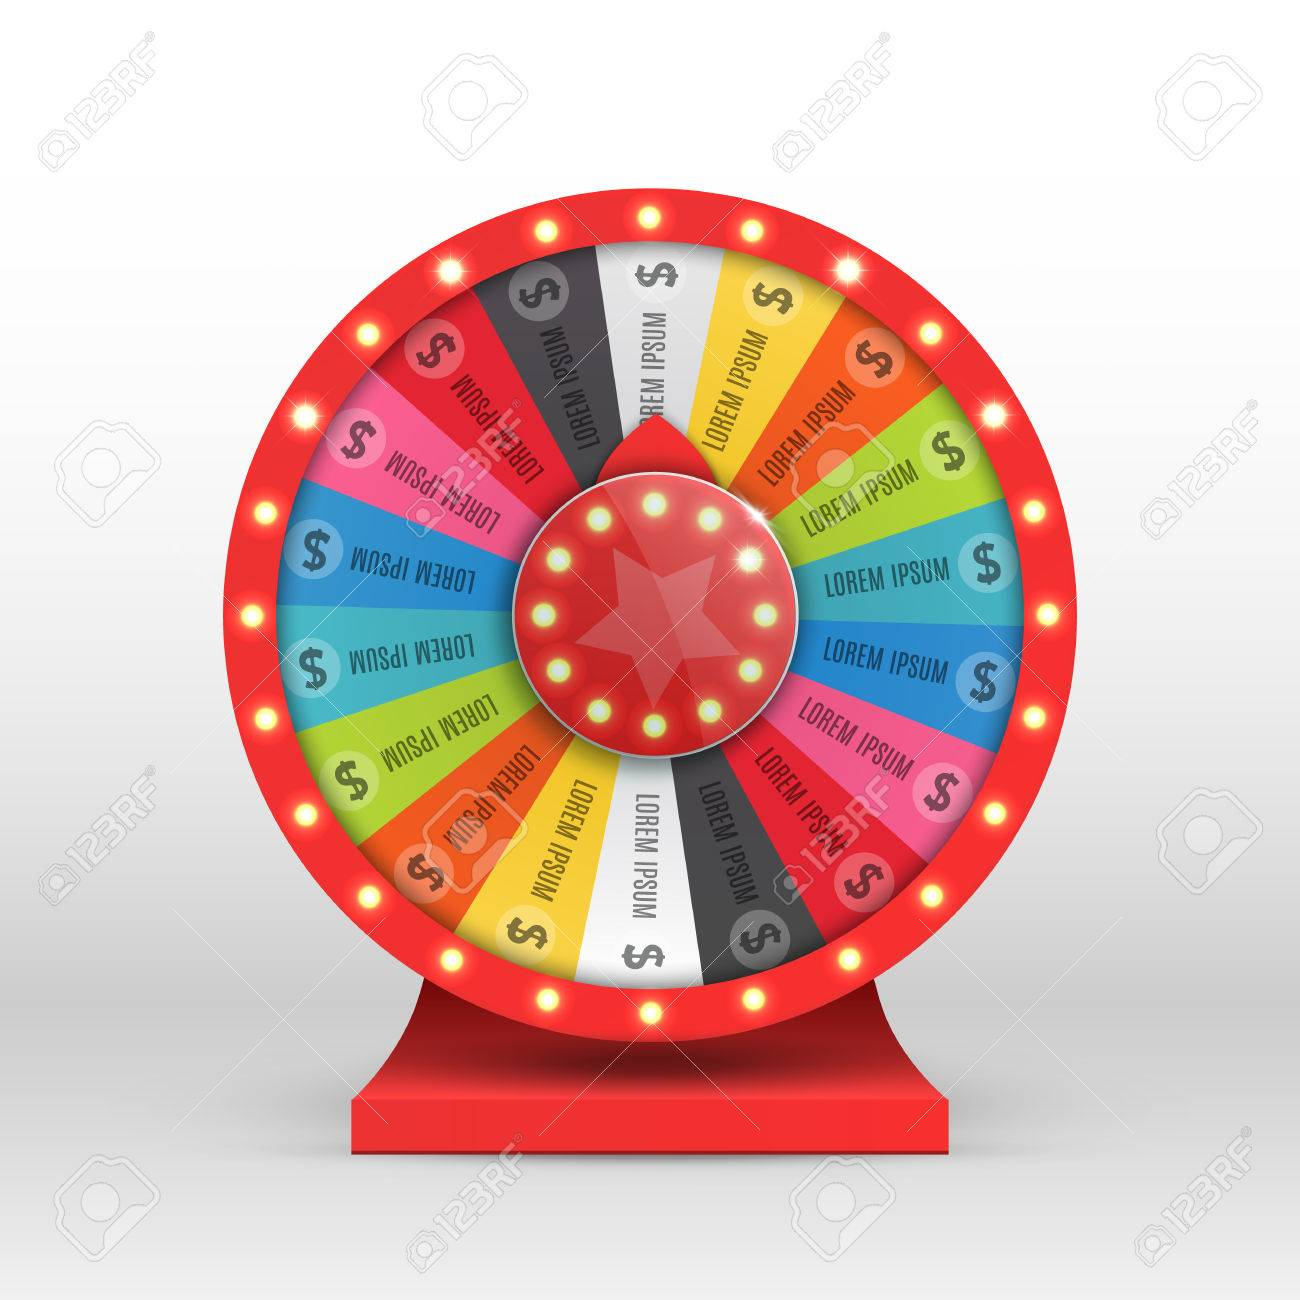 Colorful wheel of luck or fortune infographic. Vector illustration - 69007335